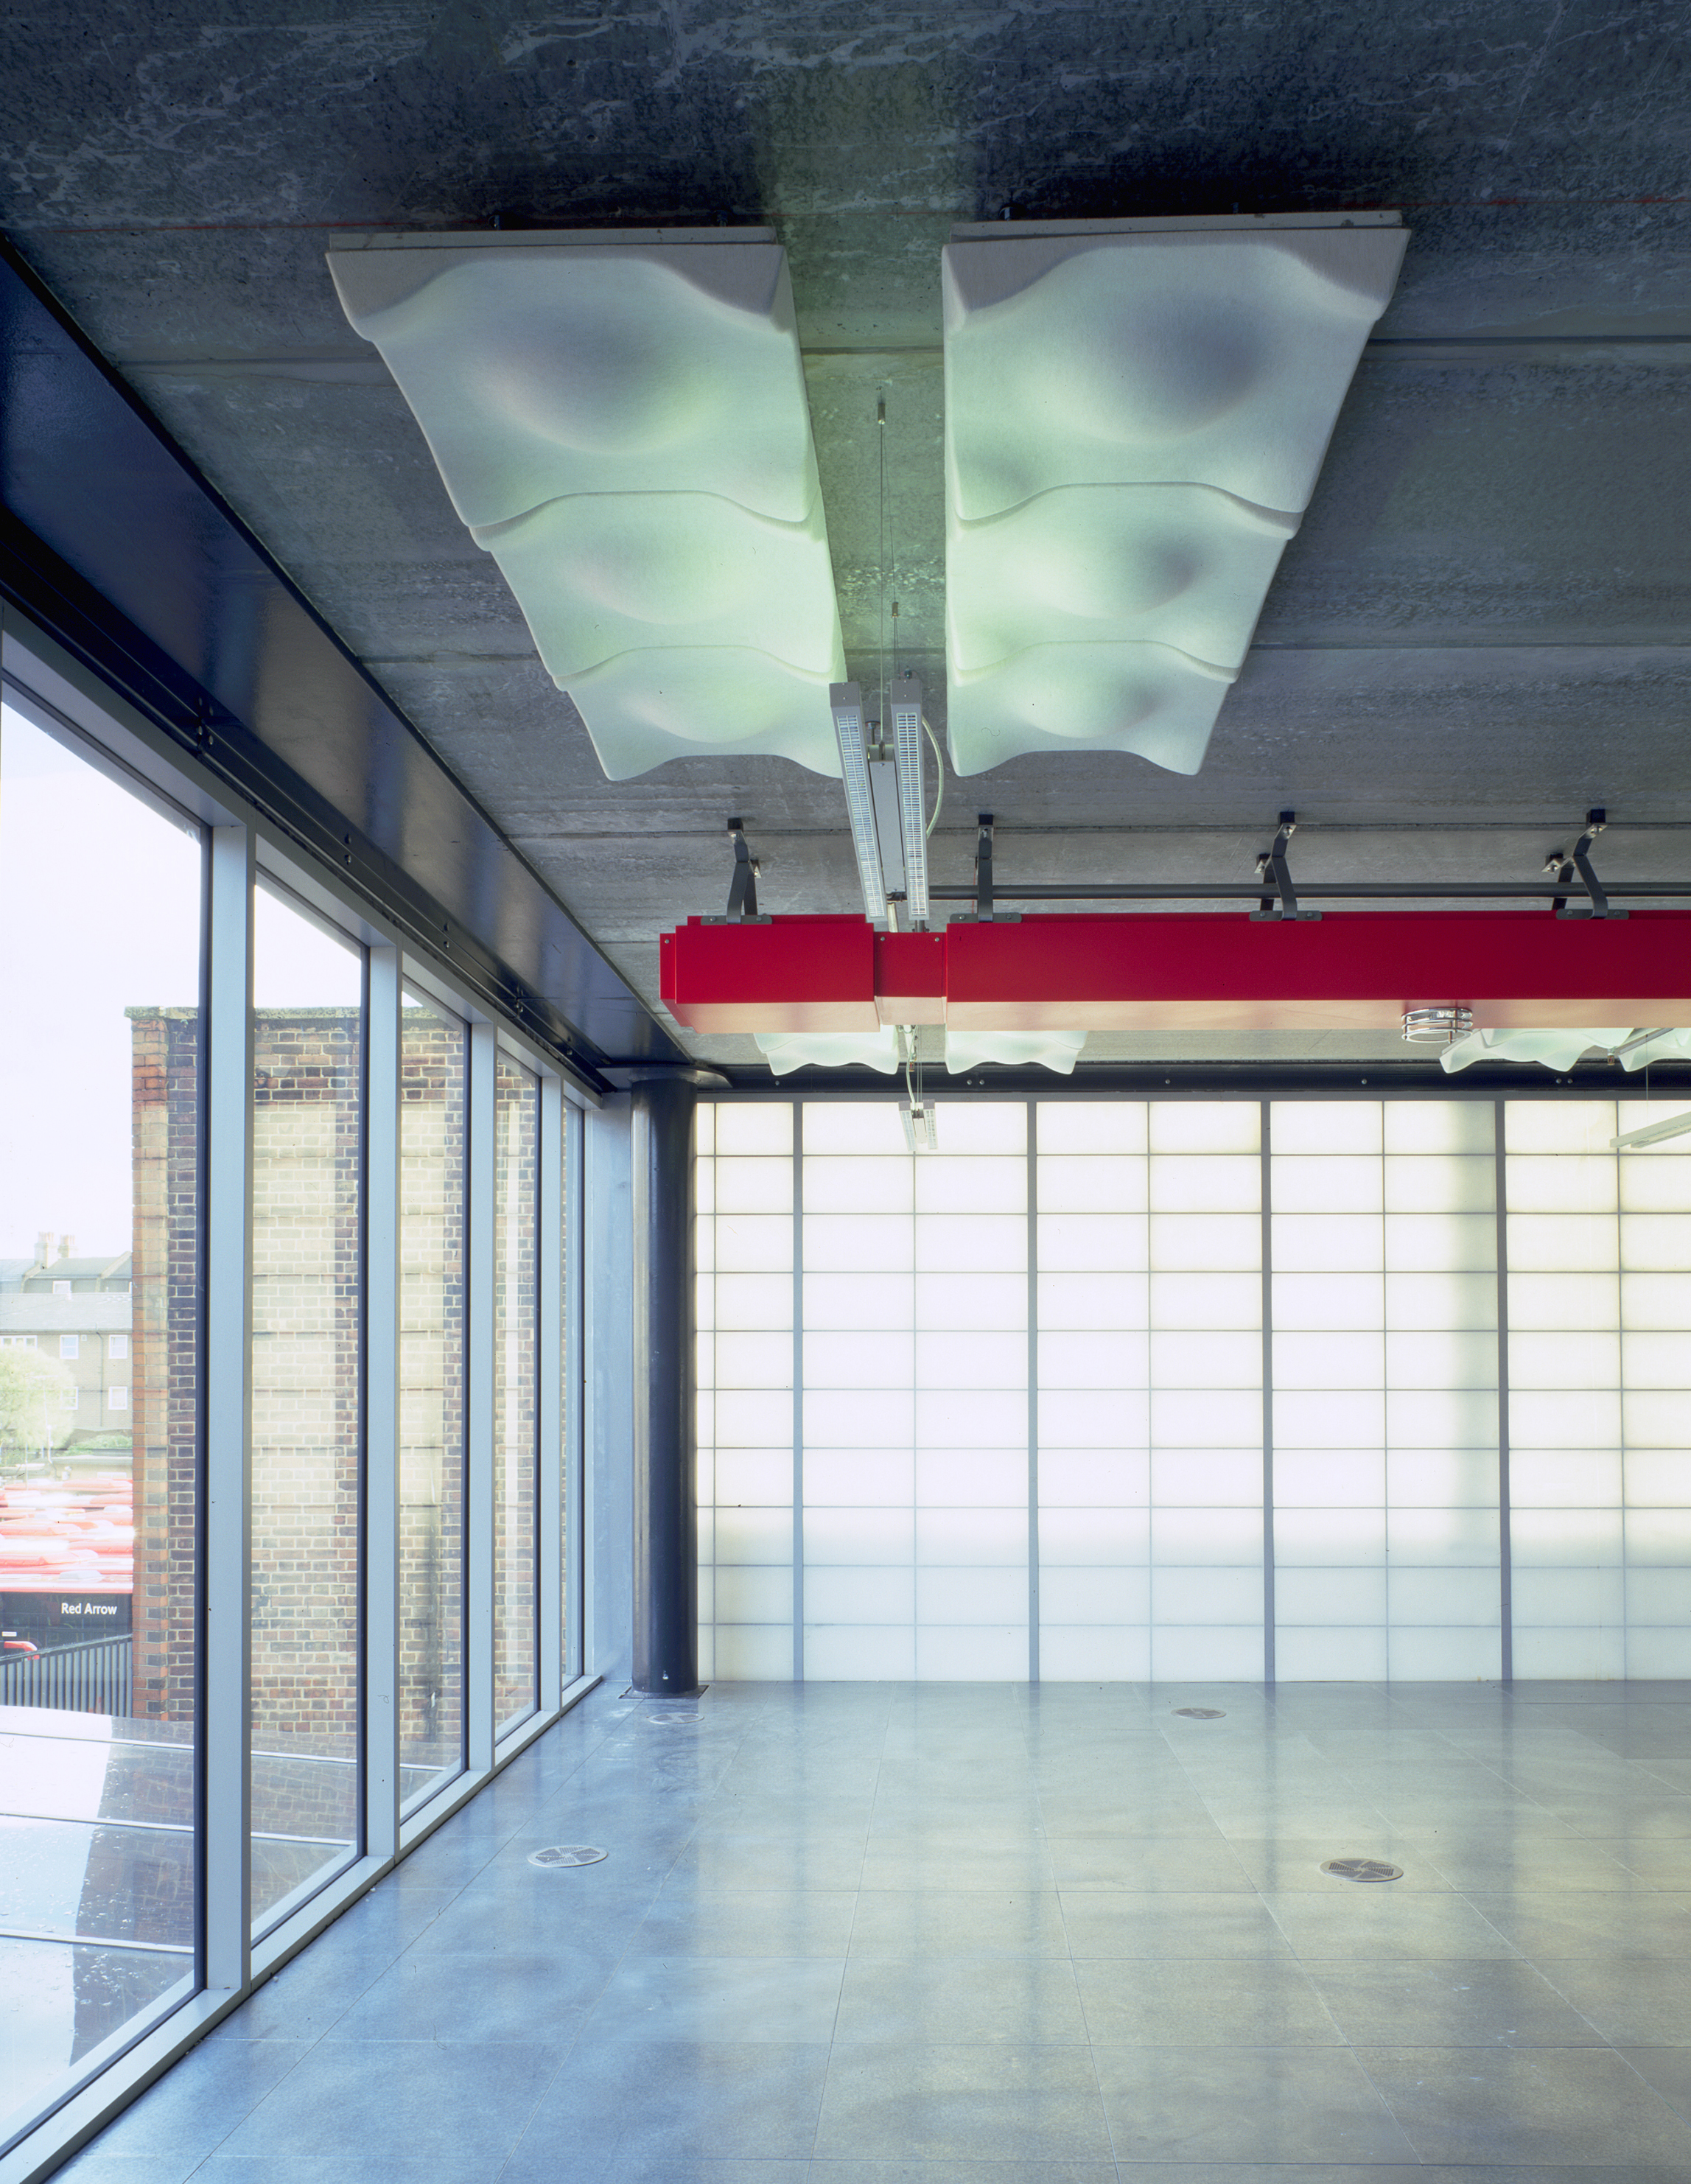 Photograph of Interior Temporary Offices for 3i Group in London